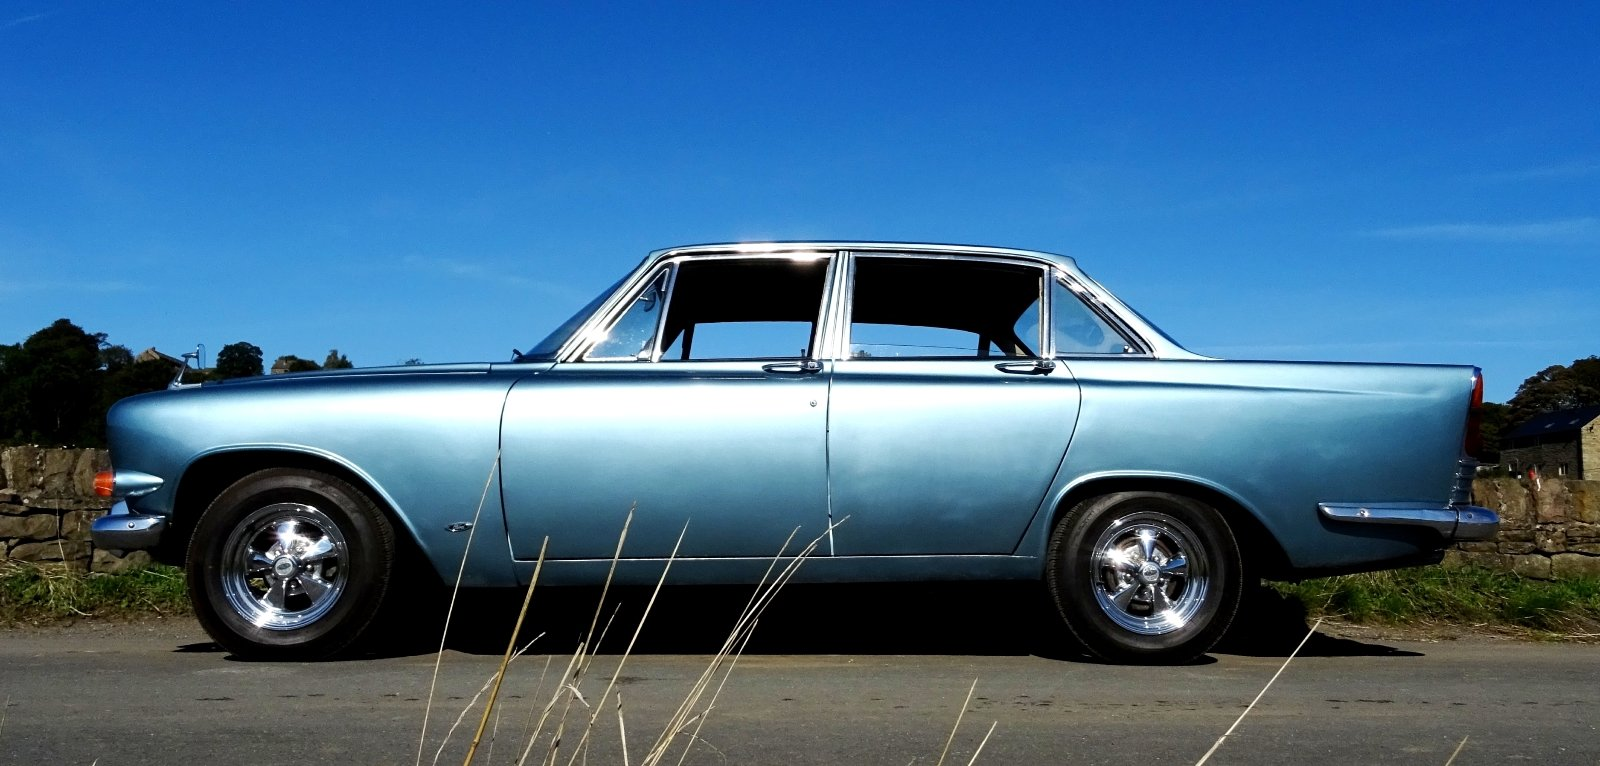 1966 FORD ZODIAC MK3 STUNNING DEEP BLUE PAINT & SPARKLING CHROME For Sale (picture 4 of 6)